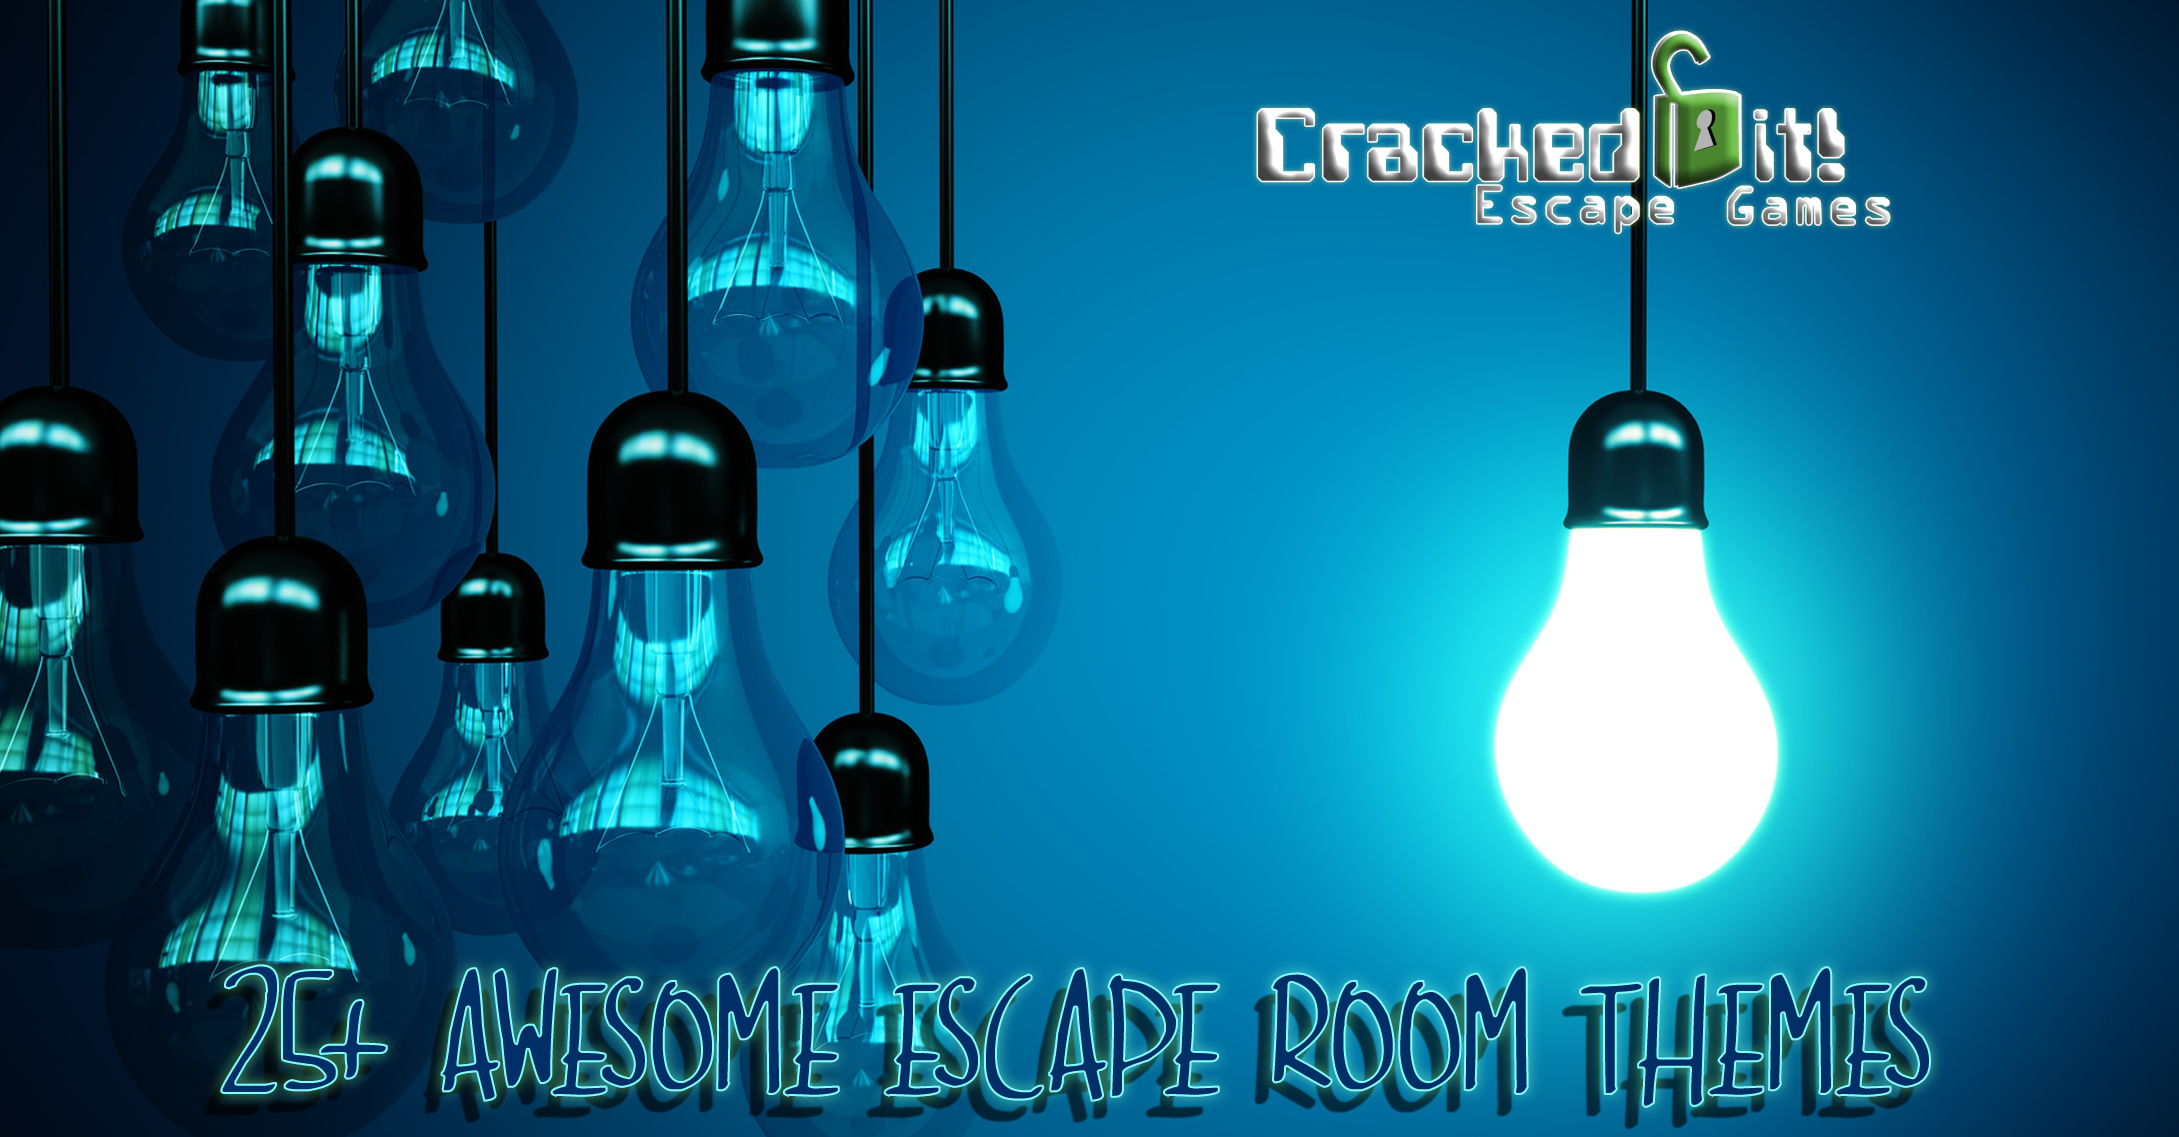 25+ Awesome Escape Room Themes